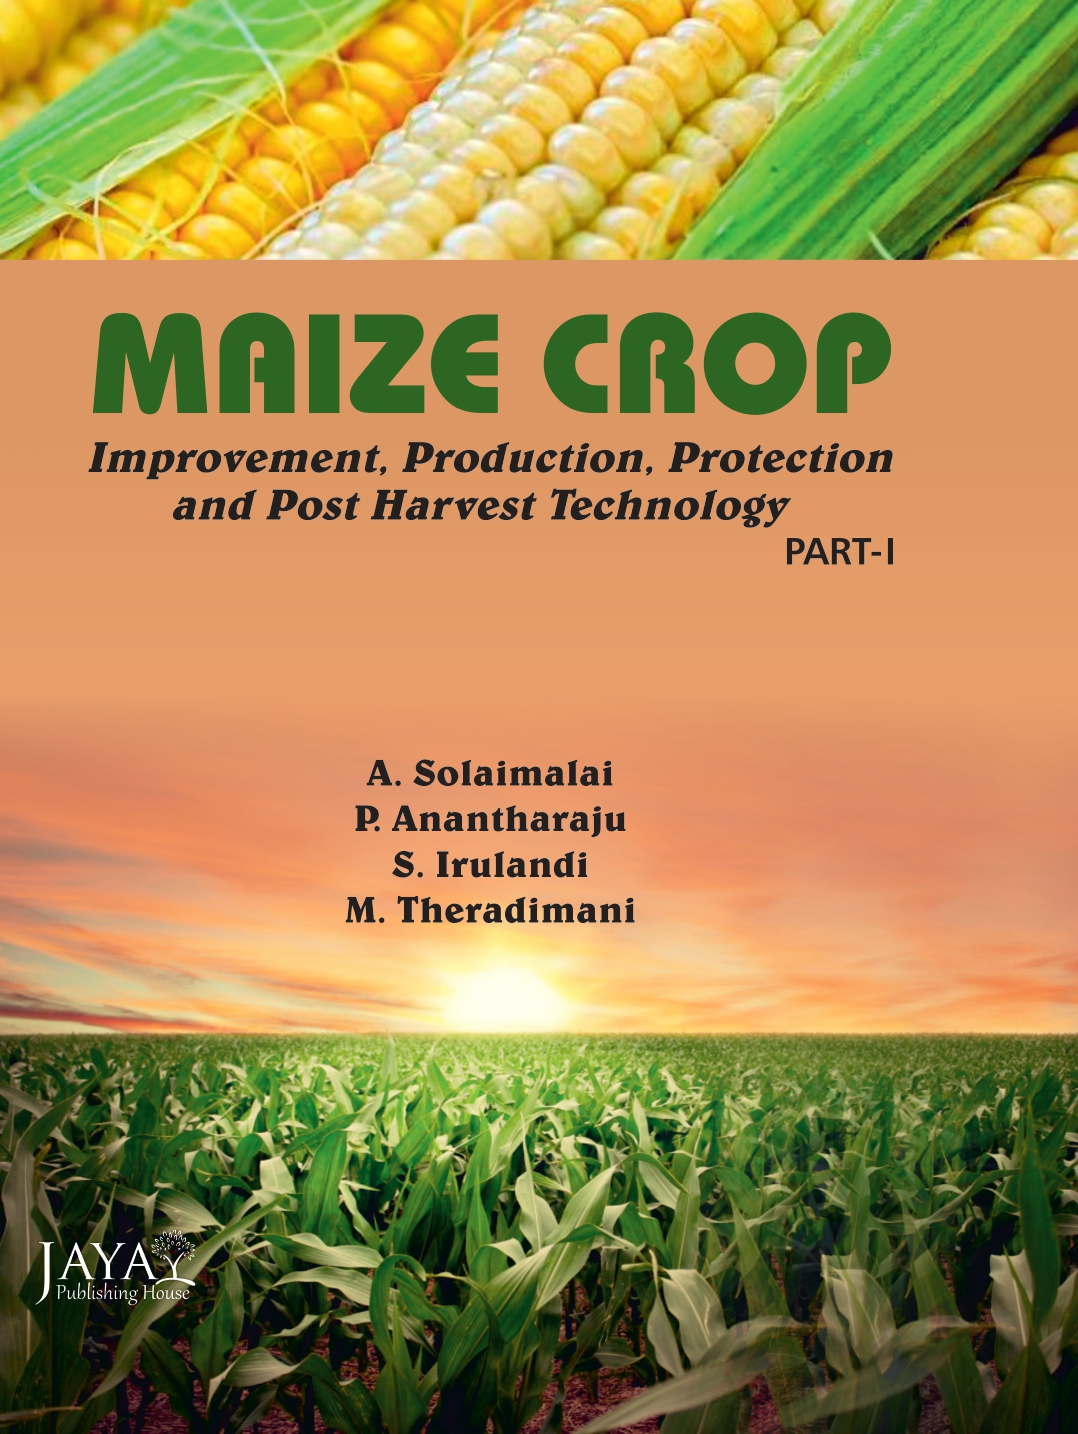 Maize Crop : Improvement, Production, Protection & Post Harvest Technology (2 Parts)